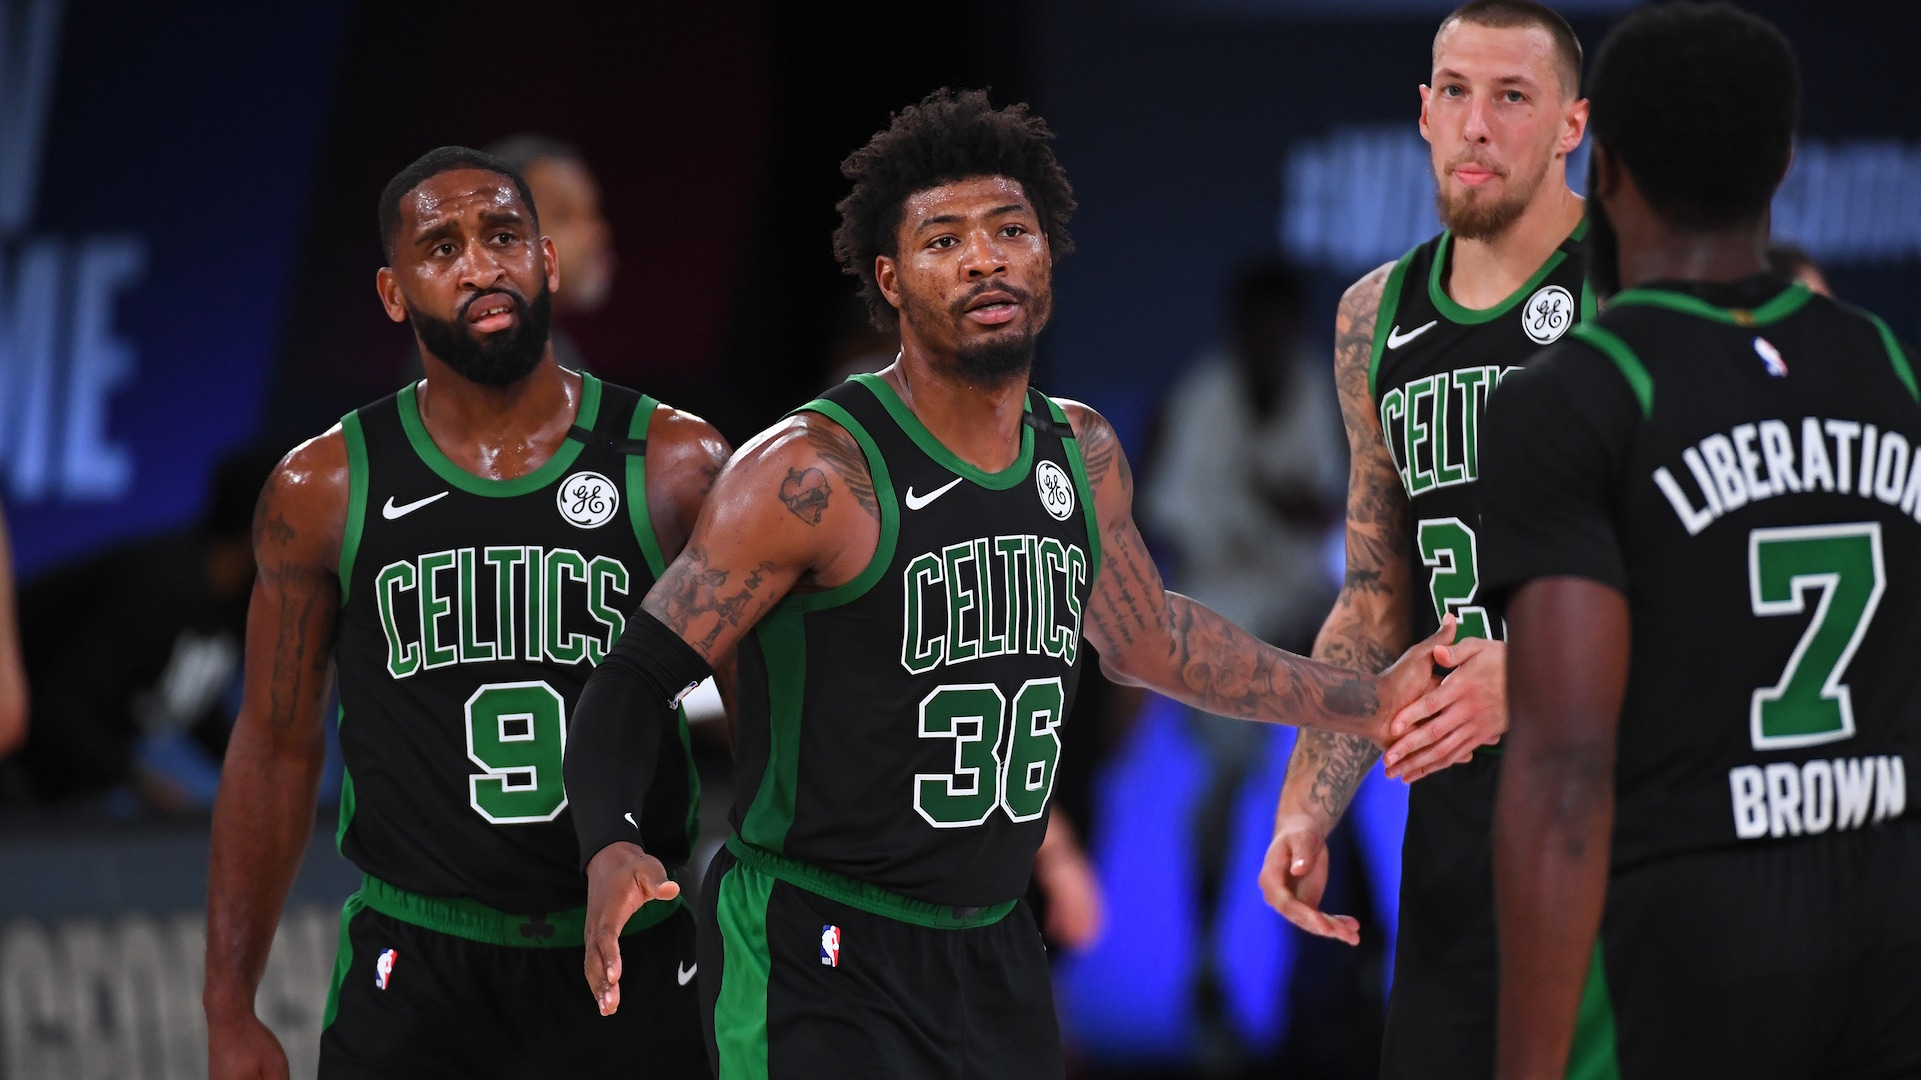 Marcus Smart unloads on Celtics teammates in emotional tirade